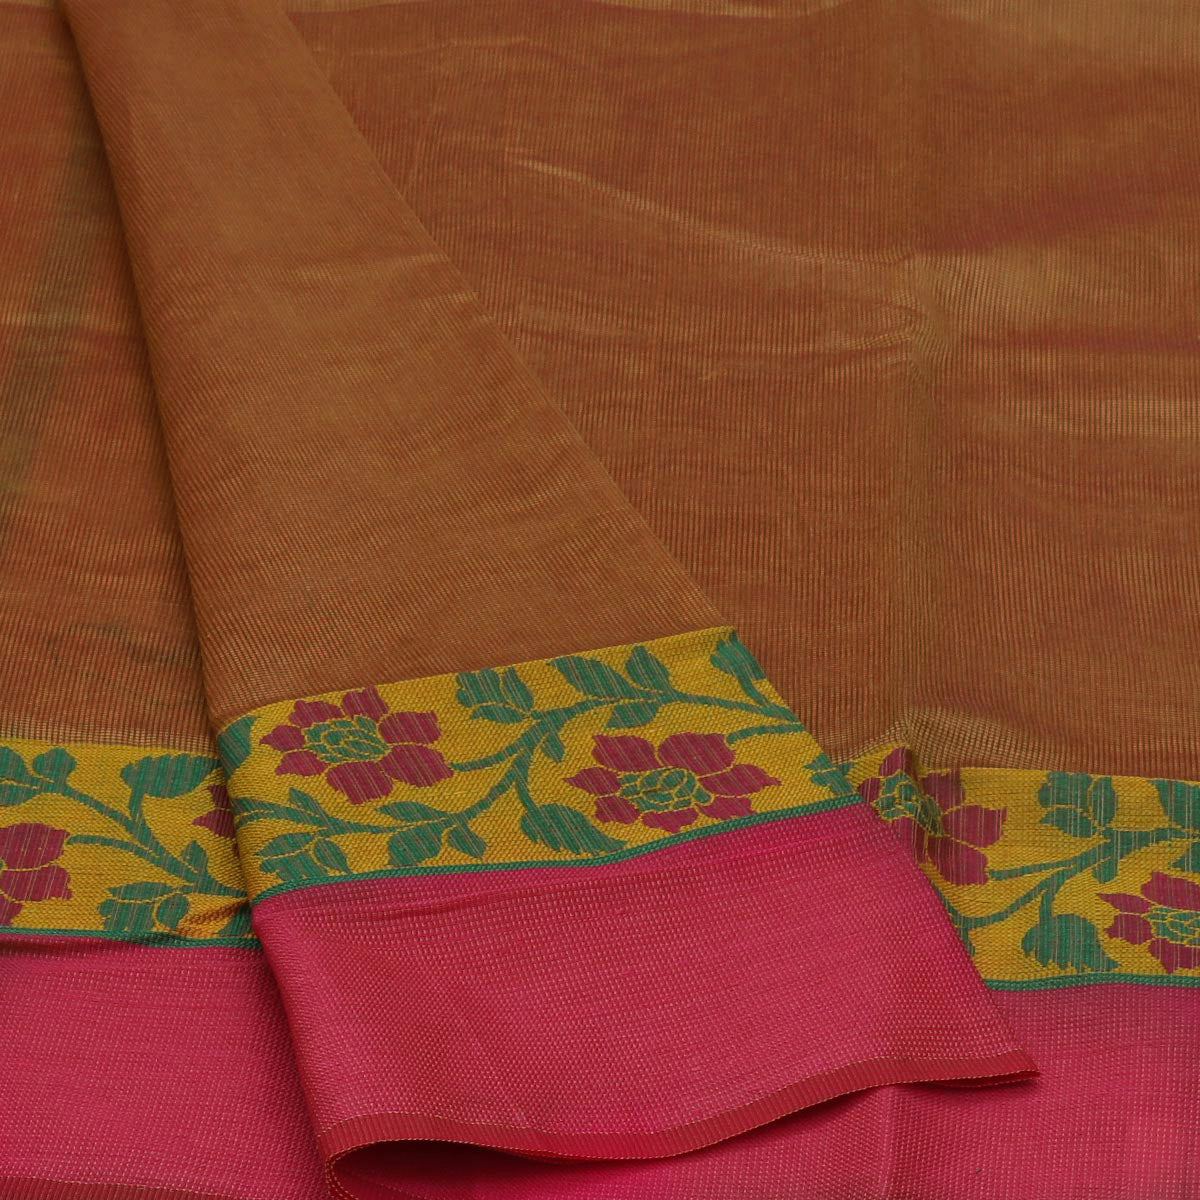 Kota Cotton Saree Orange Shade and Yellow with Floral Design Border and Blouse